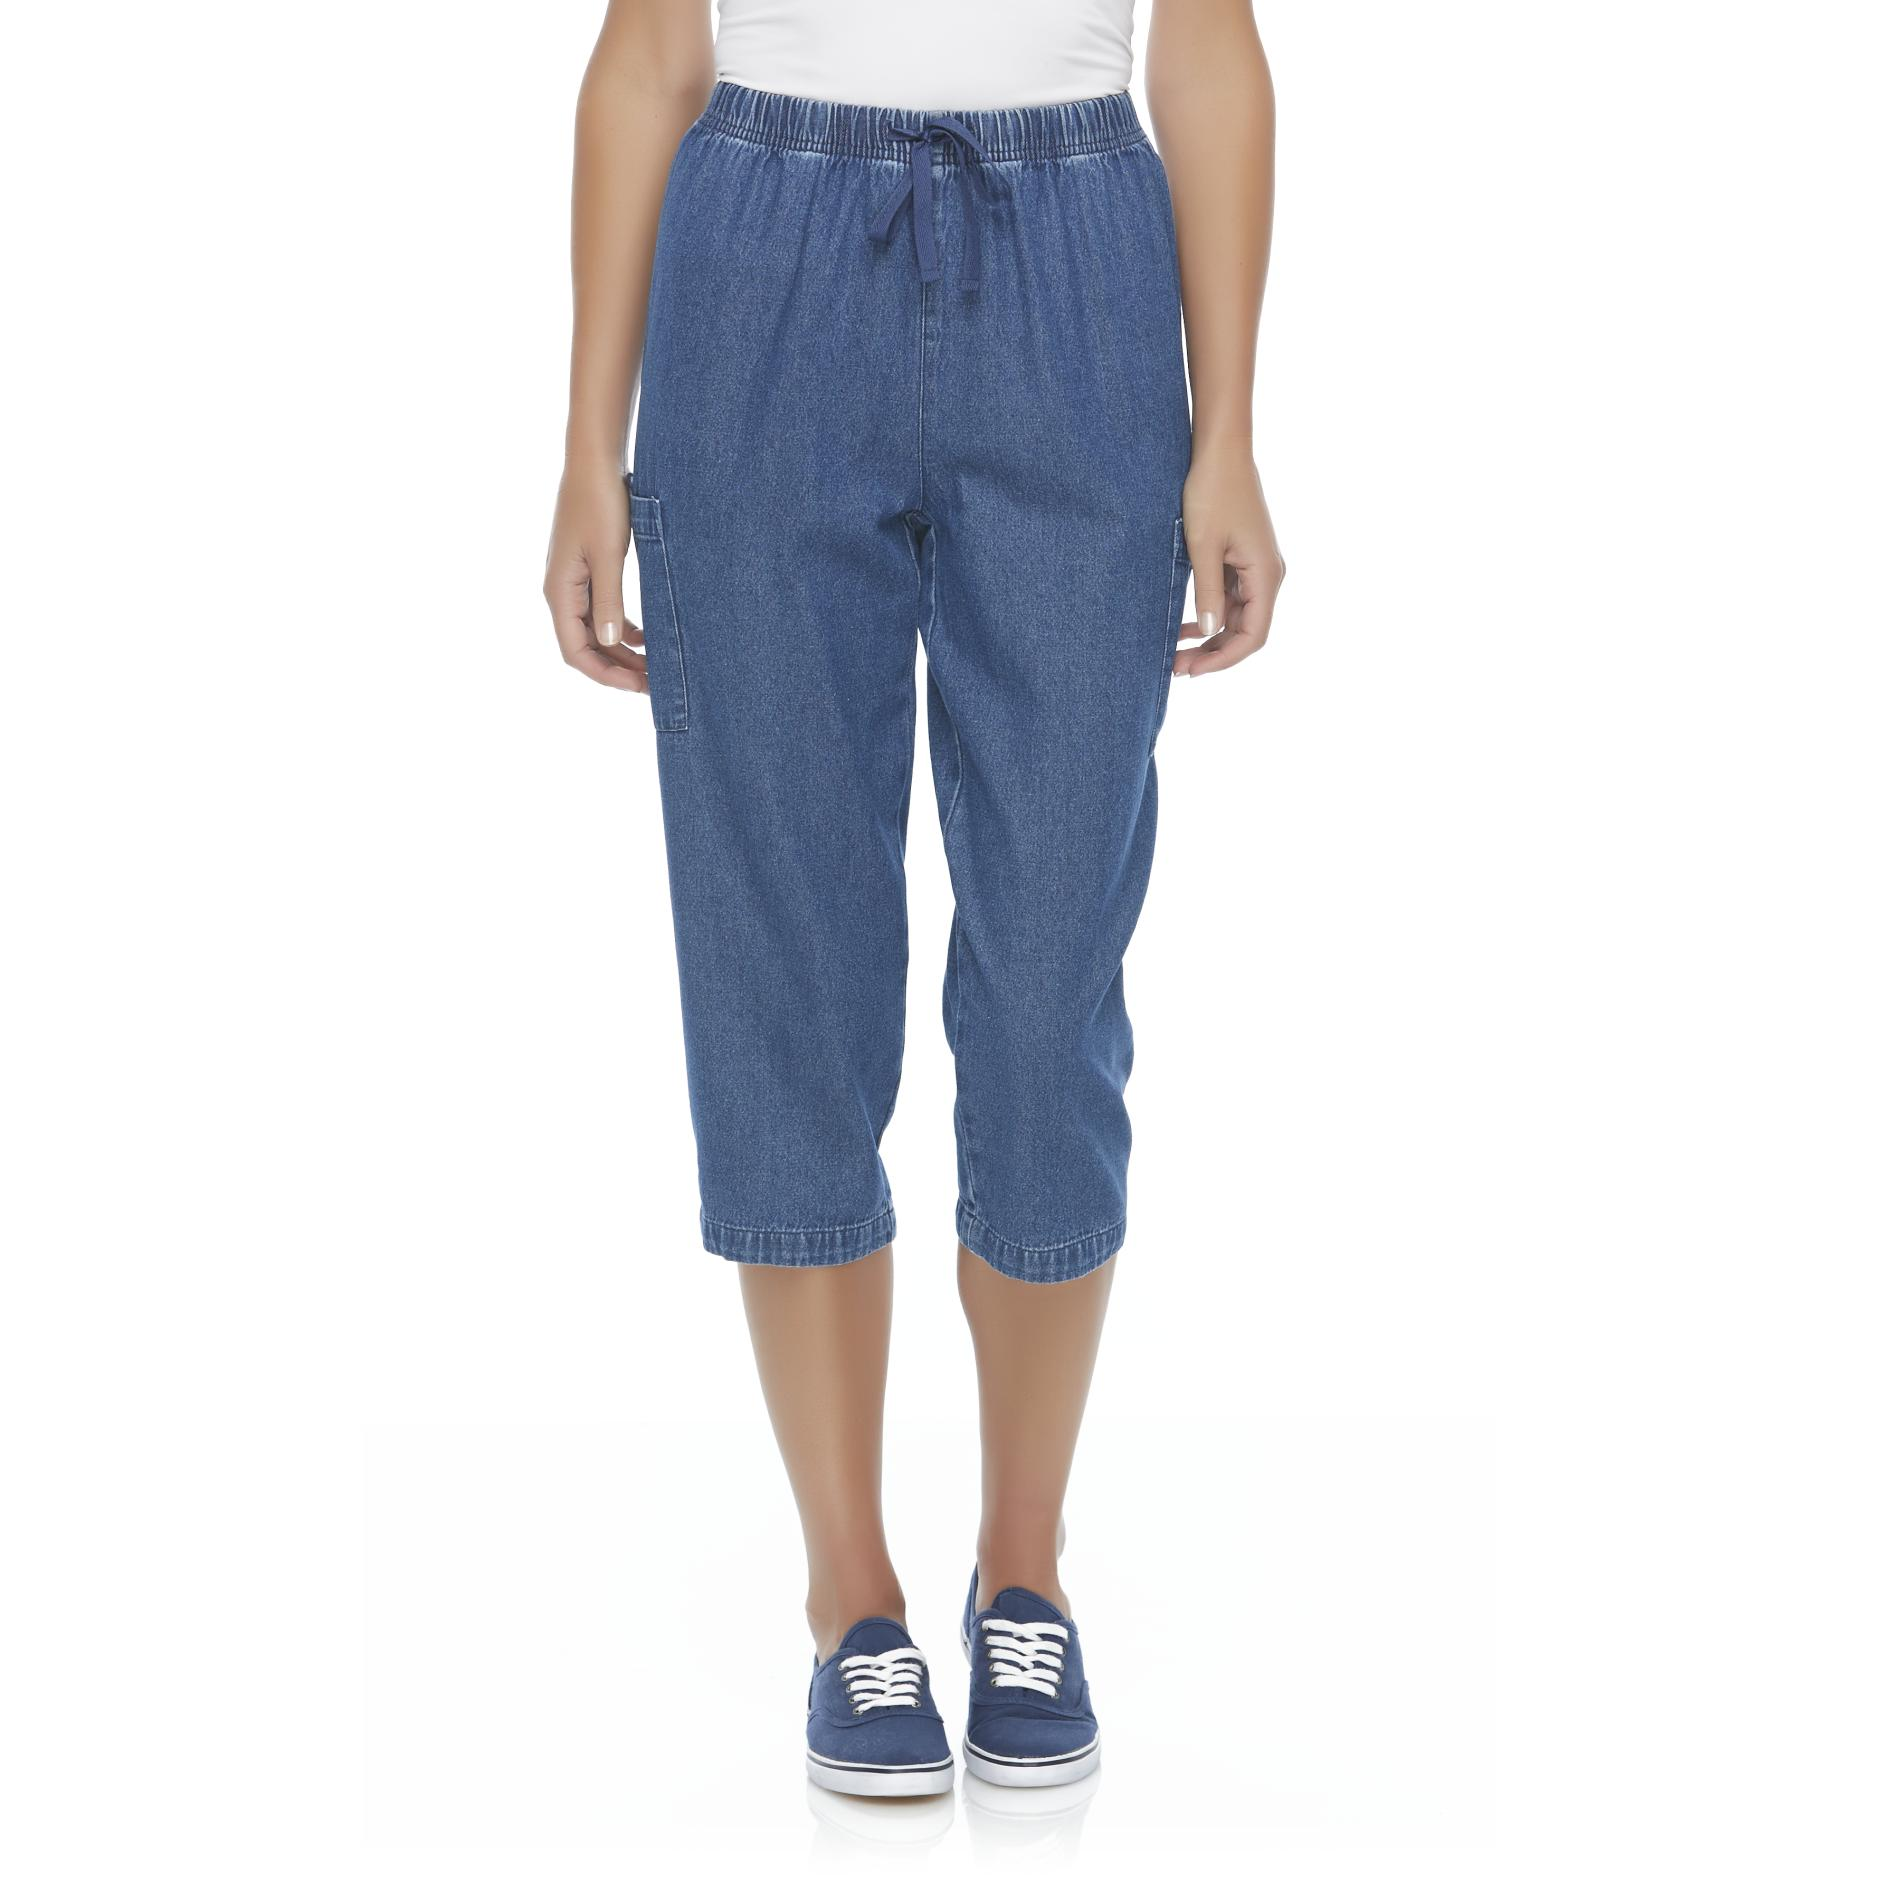 Basic Editions Women's Denim Capri Pants at Kmart.com